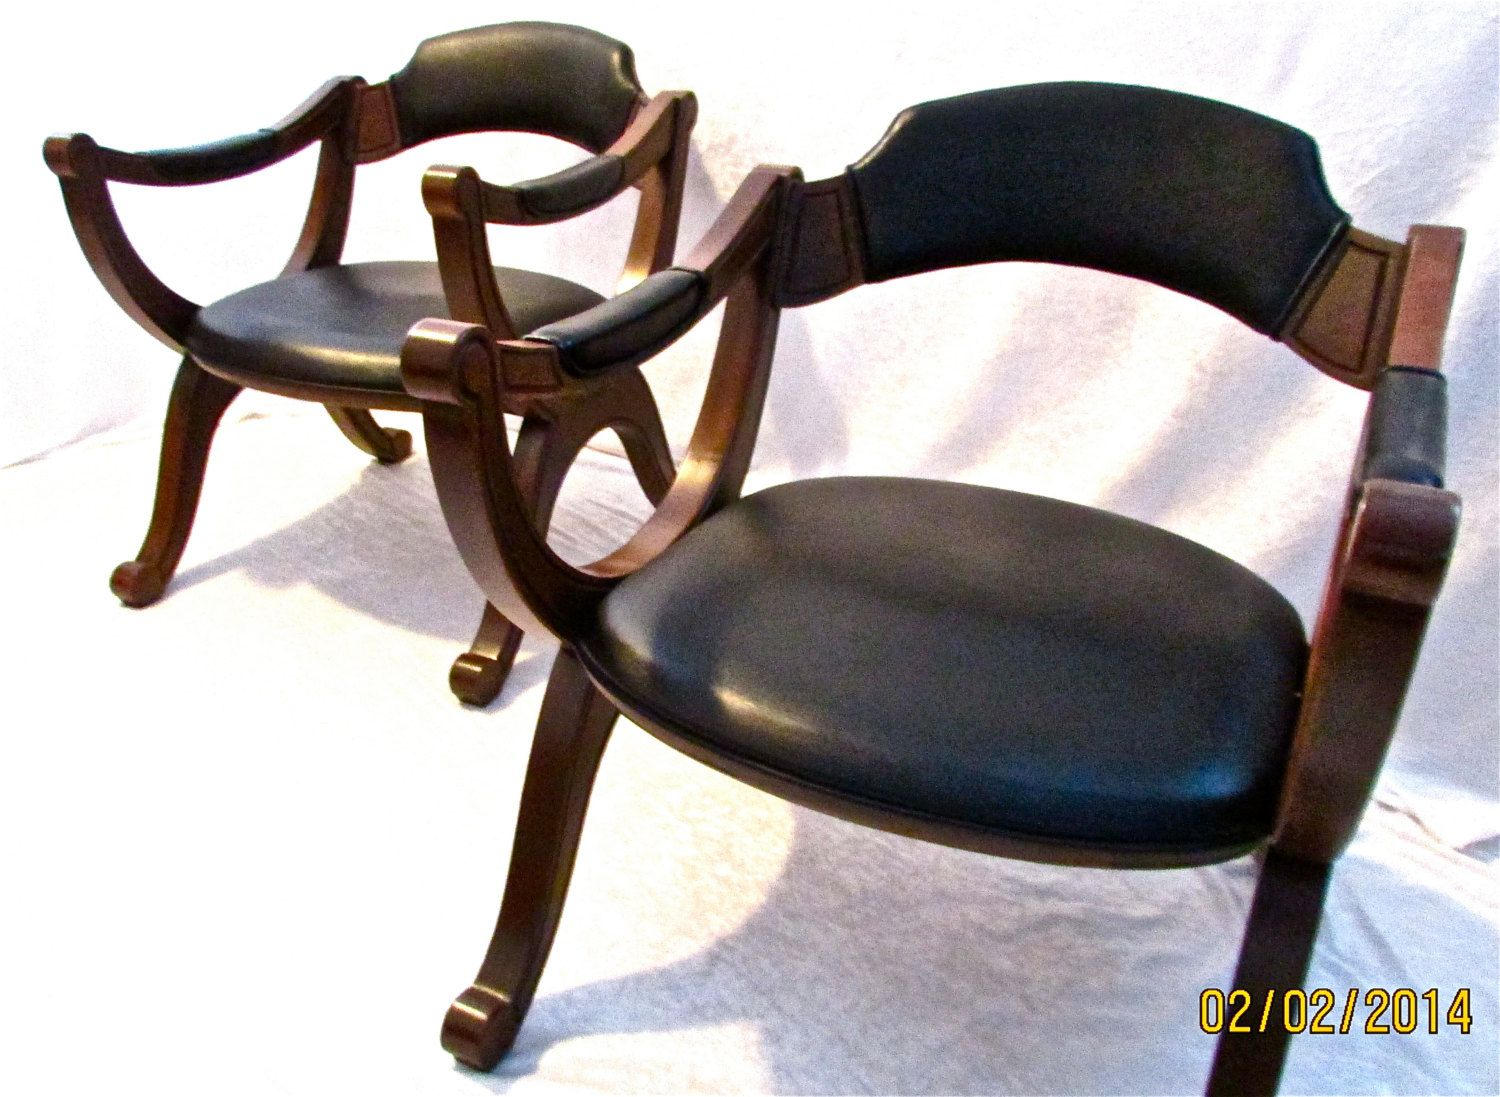 2 Vintage Drexel Esperanto Leather Chair\'s with Mereno Finish and ...